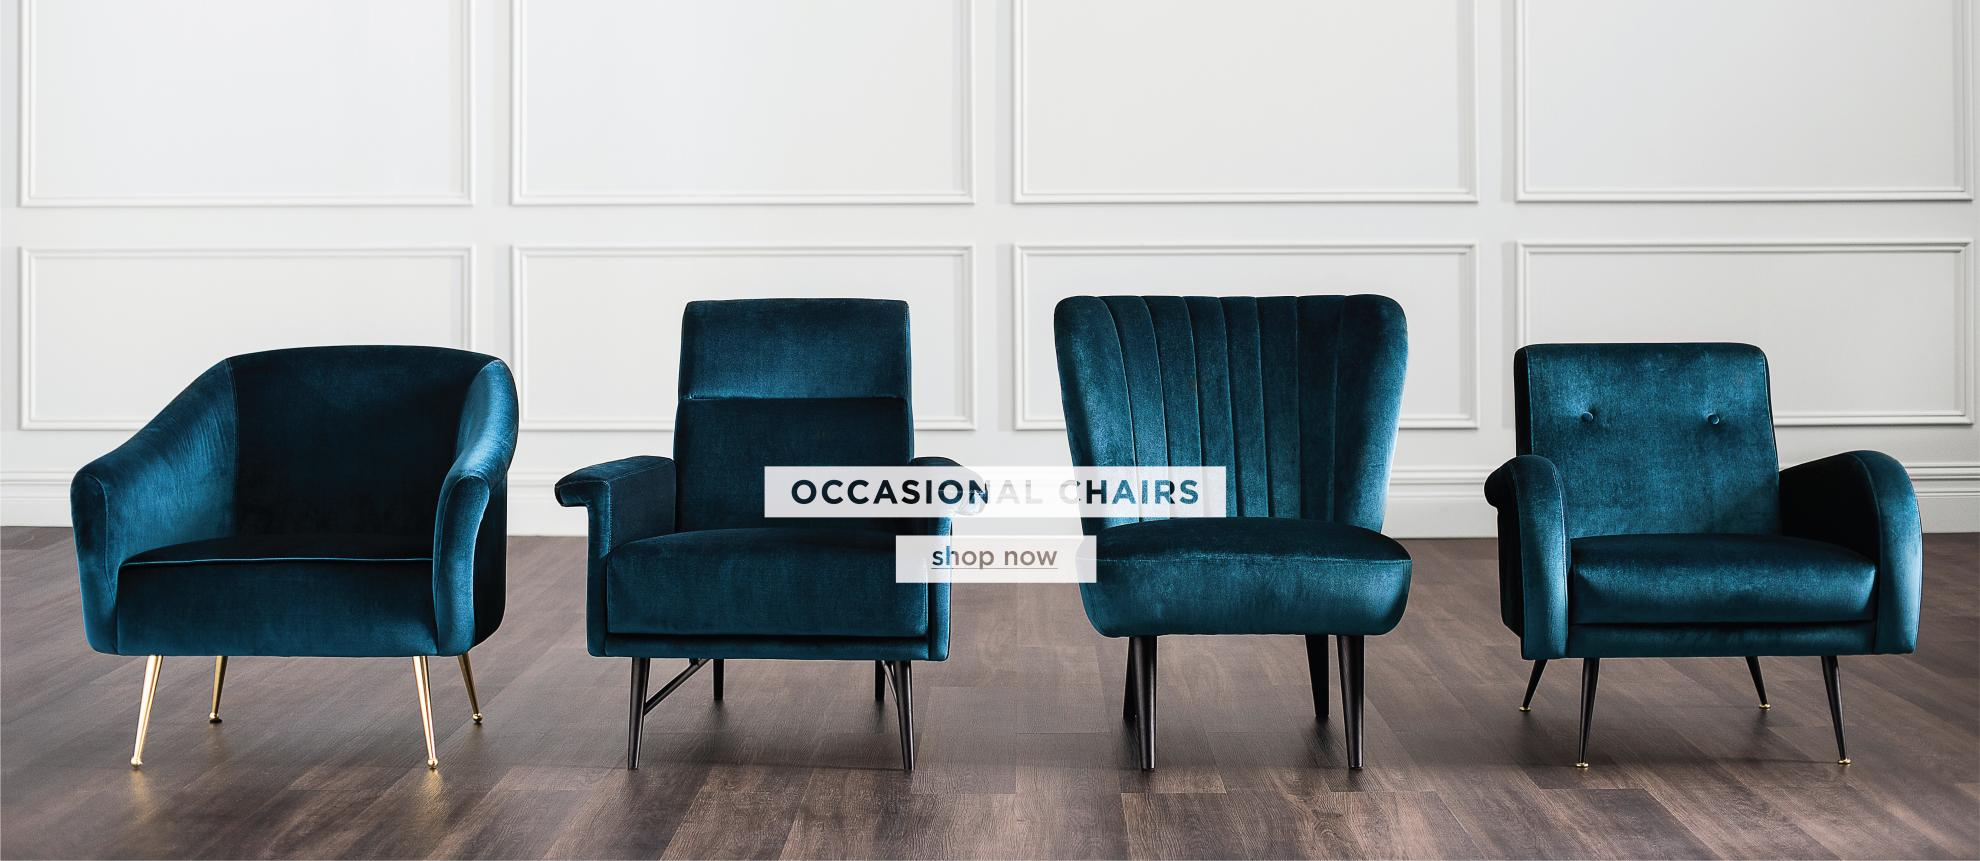 Ocassional Chairs